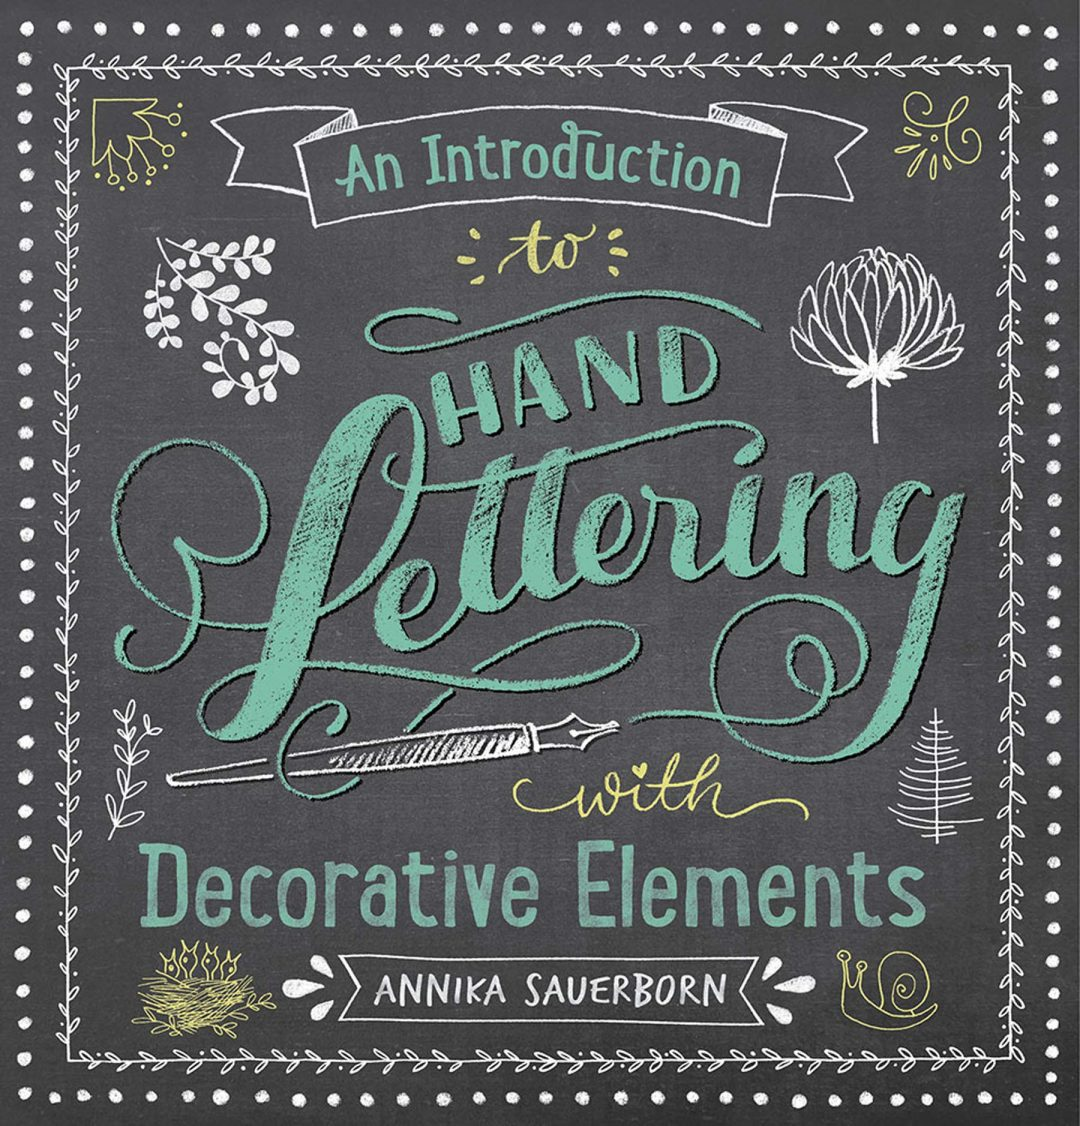 An Introduction To Hand Lettering With Decorative Elements – Book Review